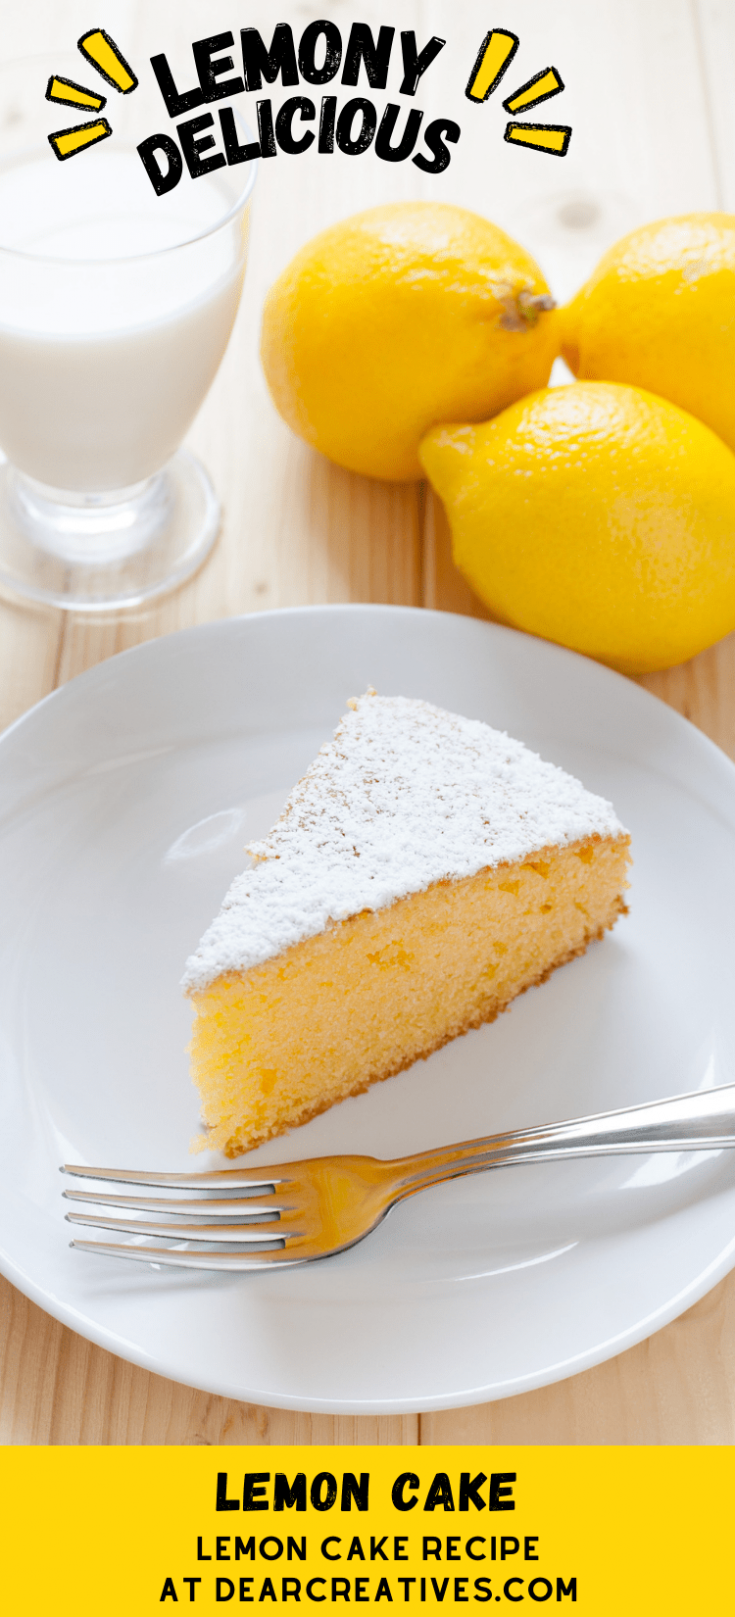 Lemon-Cake-Lemon-cake-recipe-that-is-easy-to-make.-One-layer-lemon-cake-that-is-moist-delicious-topped-with-a-lemon-glaze-and-powdered-sugar.-DearCreatives.com